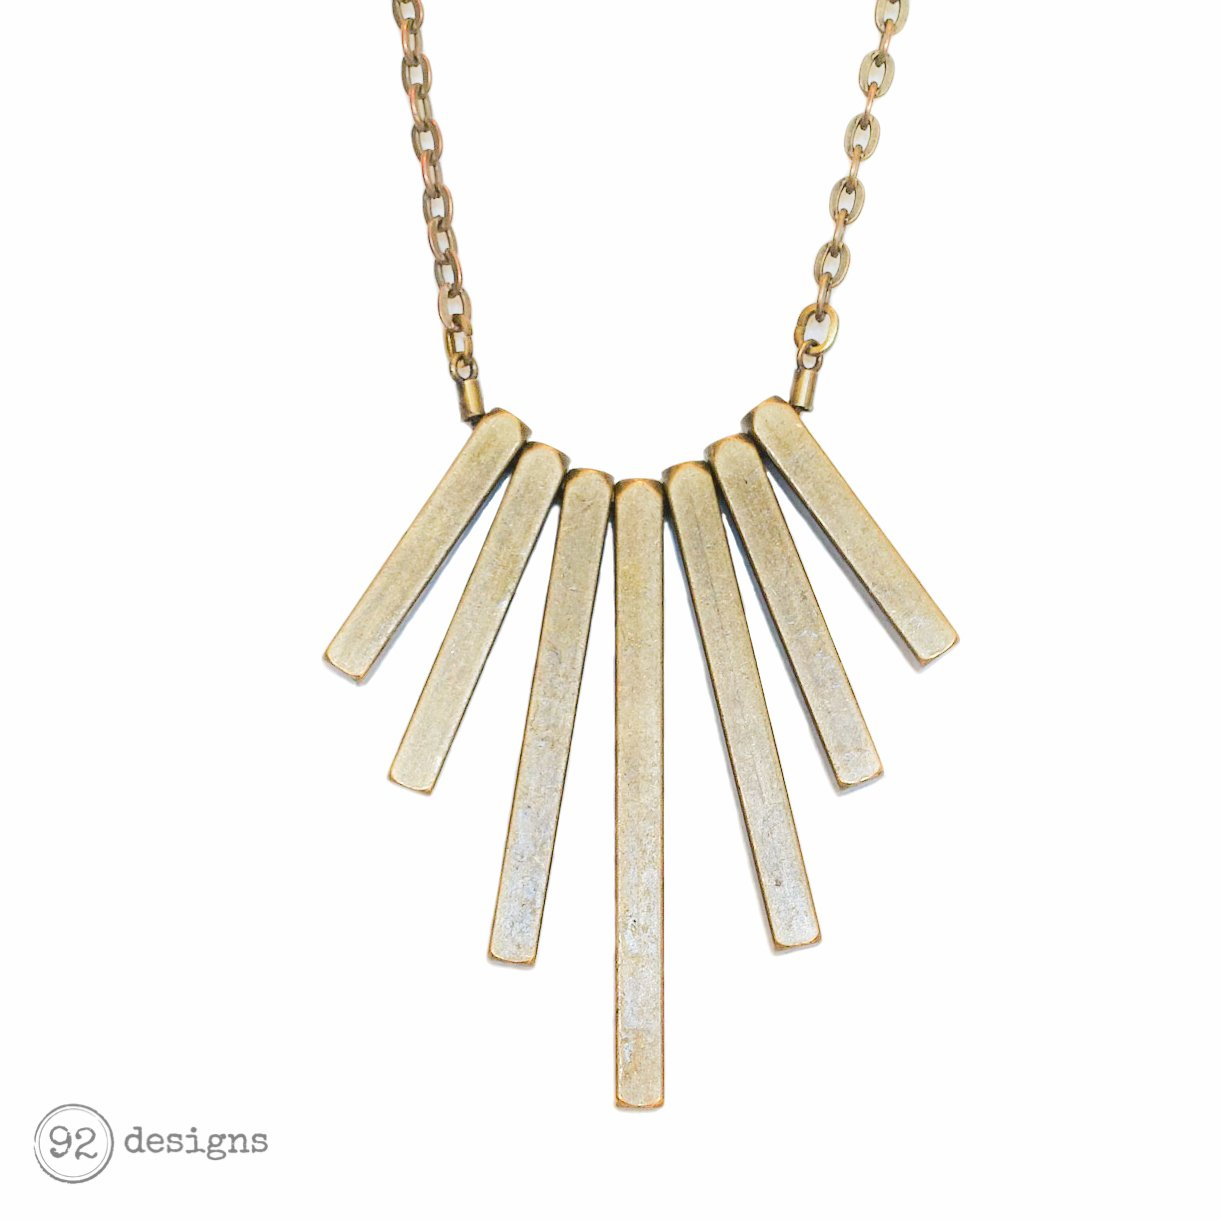 Gold Rays Necklace – 92 Designs | Handcrafted Modern Jewelry